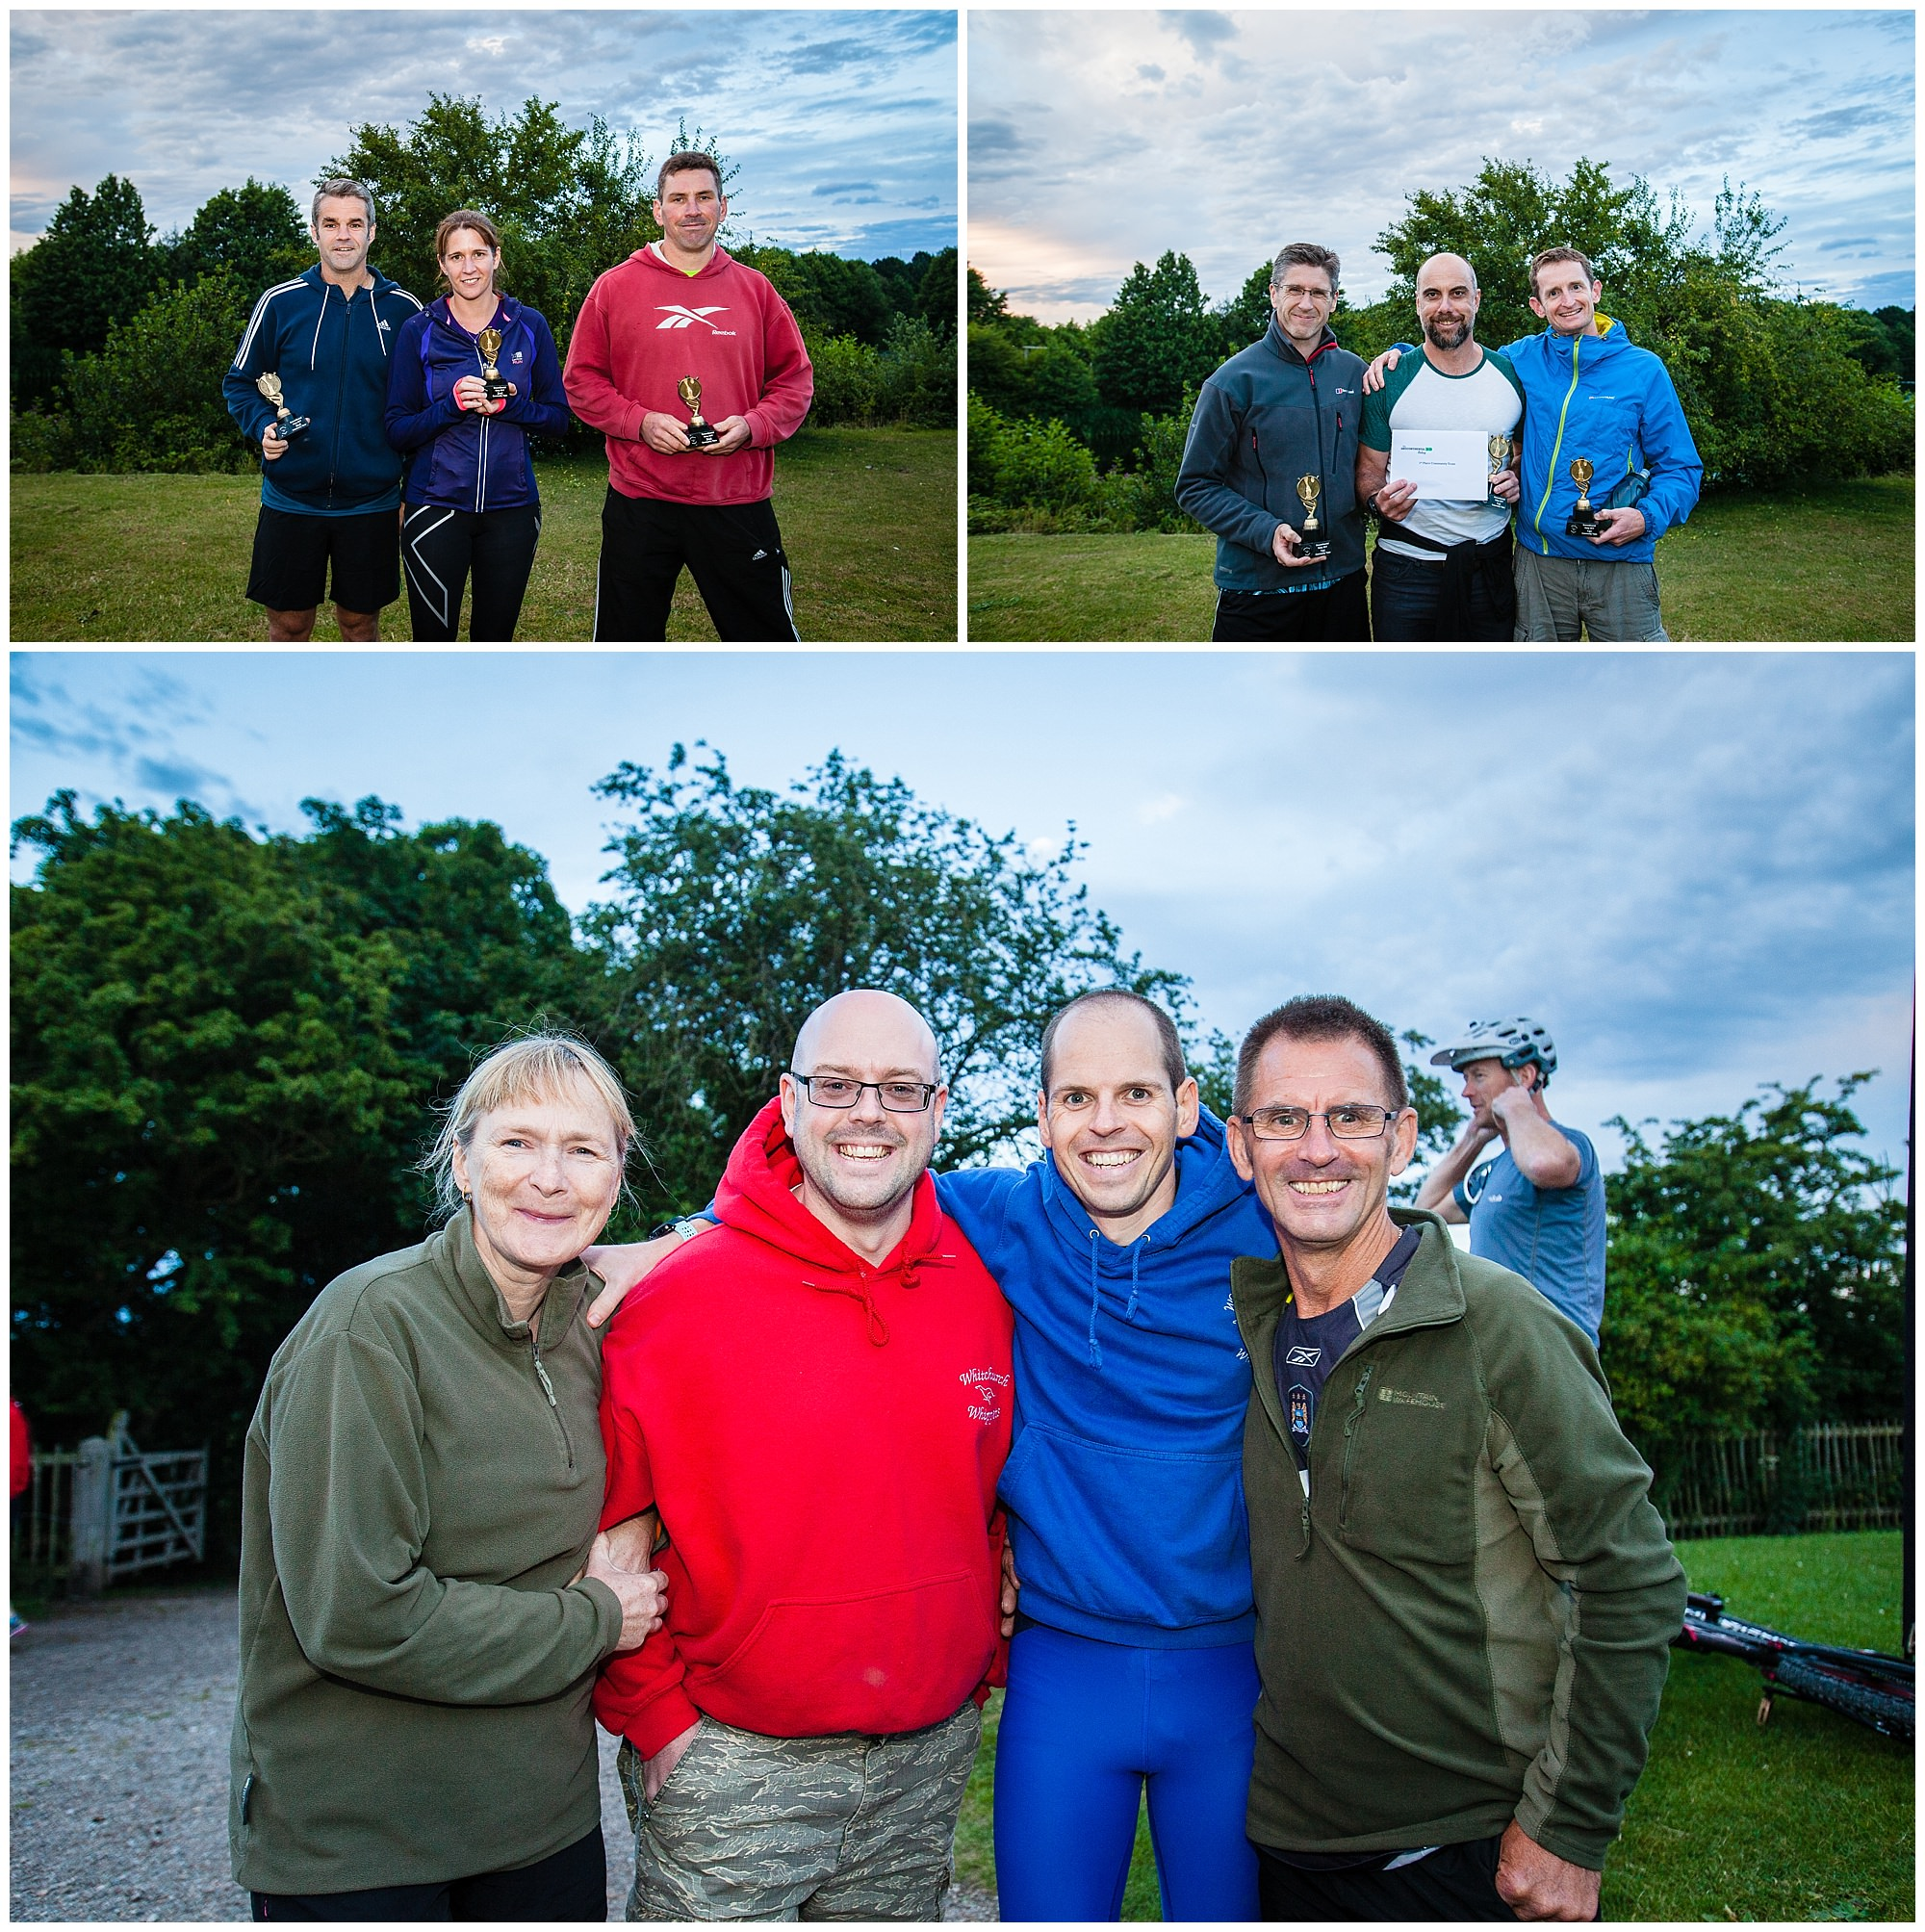 winners of categories at alderford lake -shropshire running event